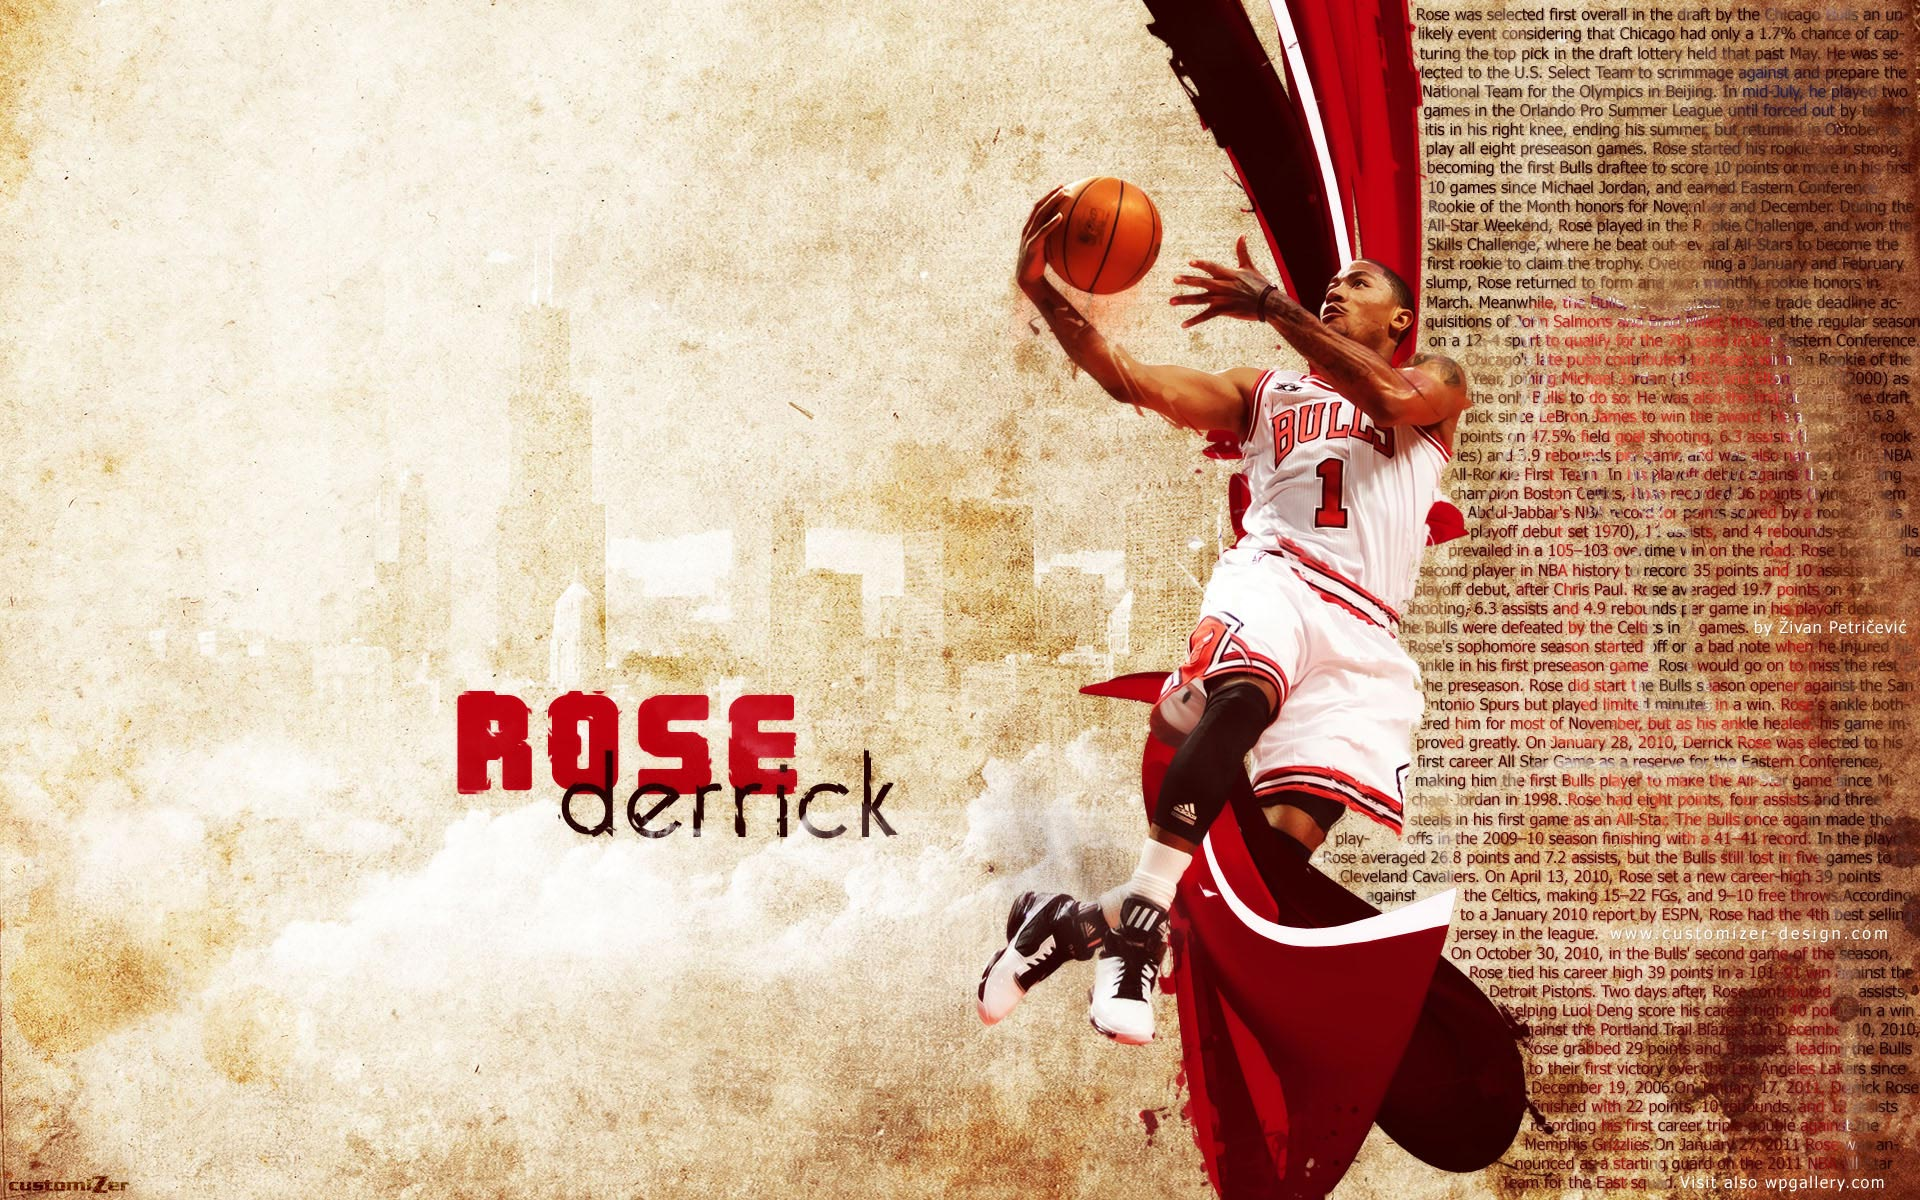 related derrick rose all star 2011 widescreen 05 23 2011 derrick rose 1920x1200